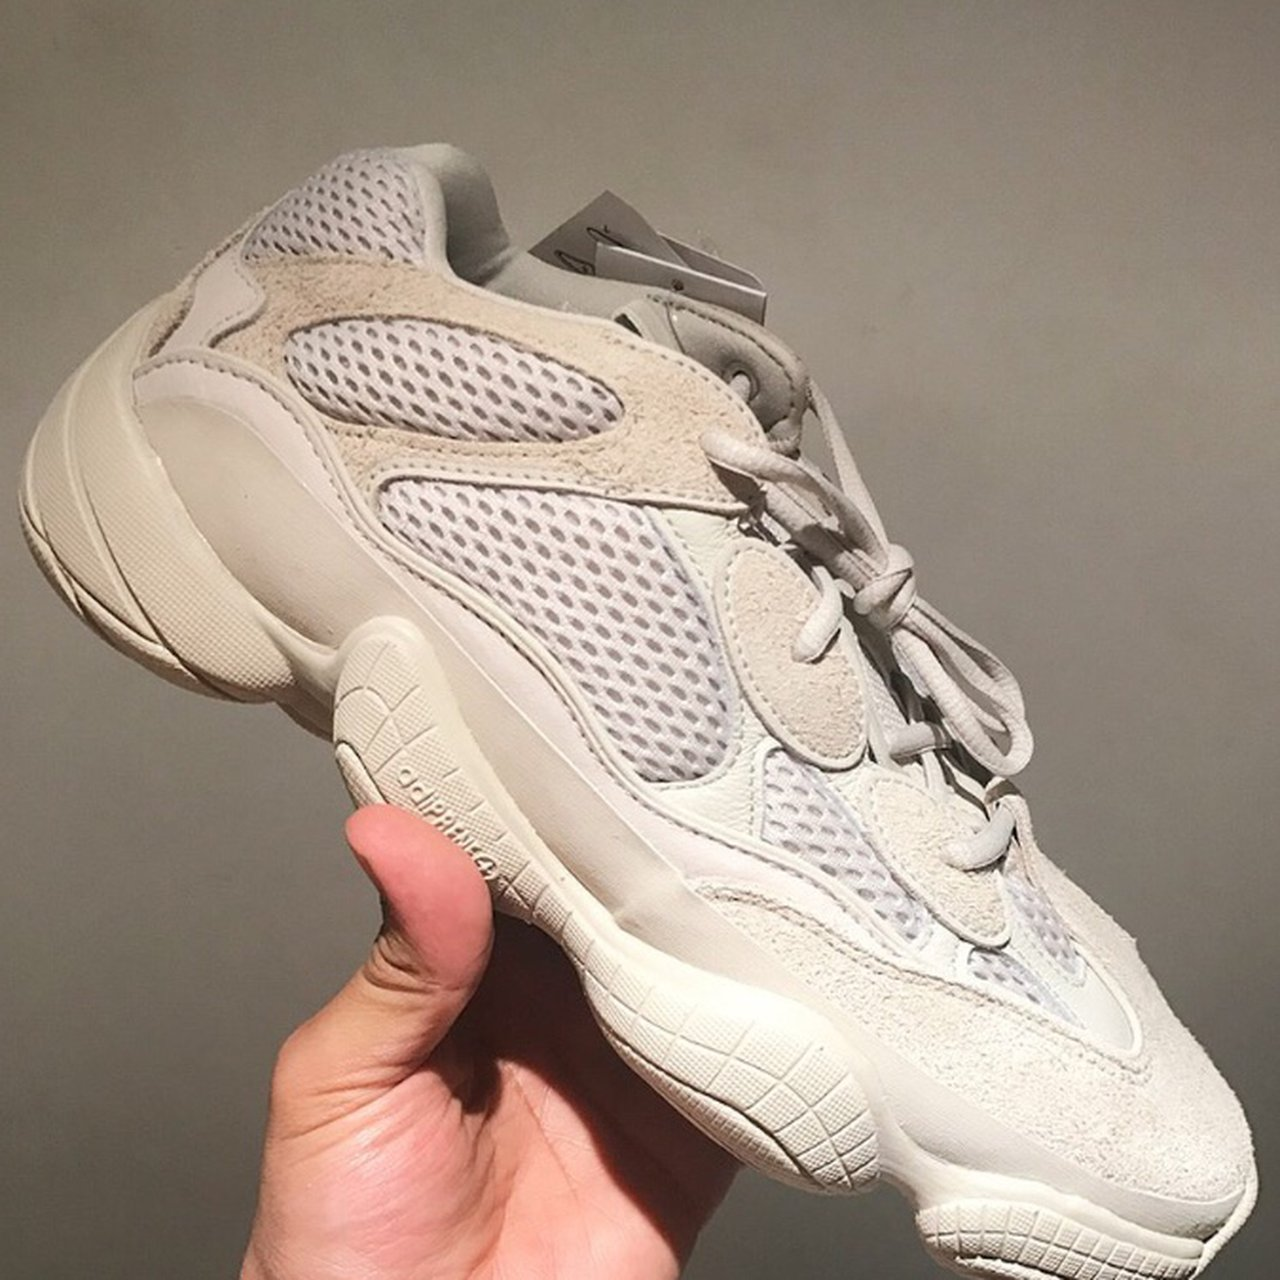 ef55bfe110394 Yeezy 500  Blush  Size 11.5 UK💊 Sold out fastt🌊 DM for and - Depop